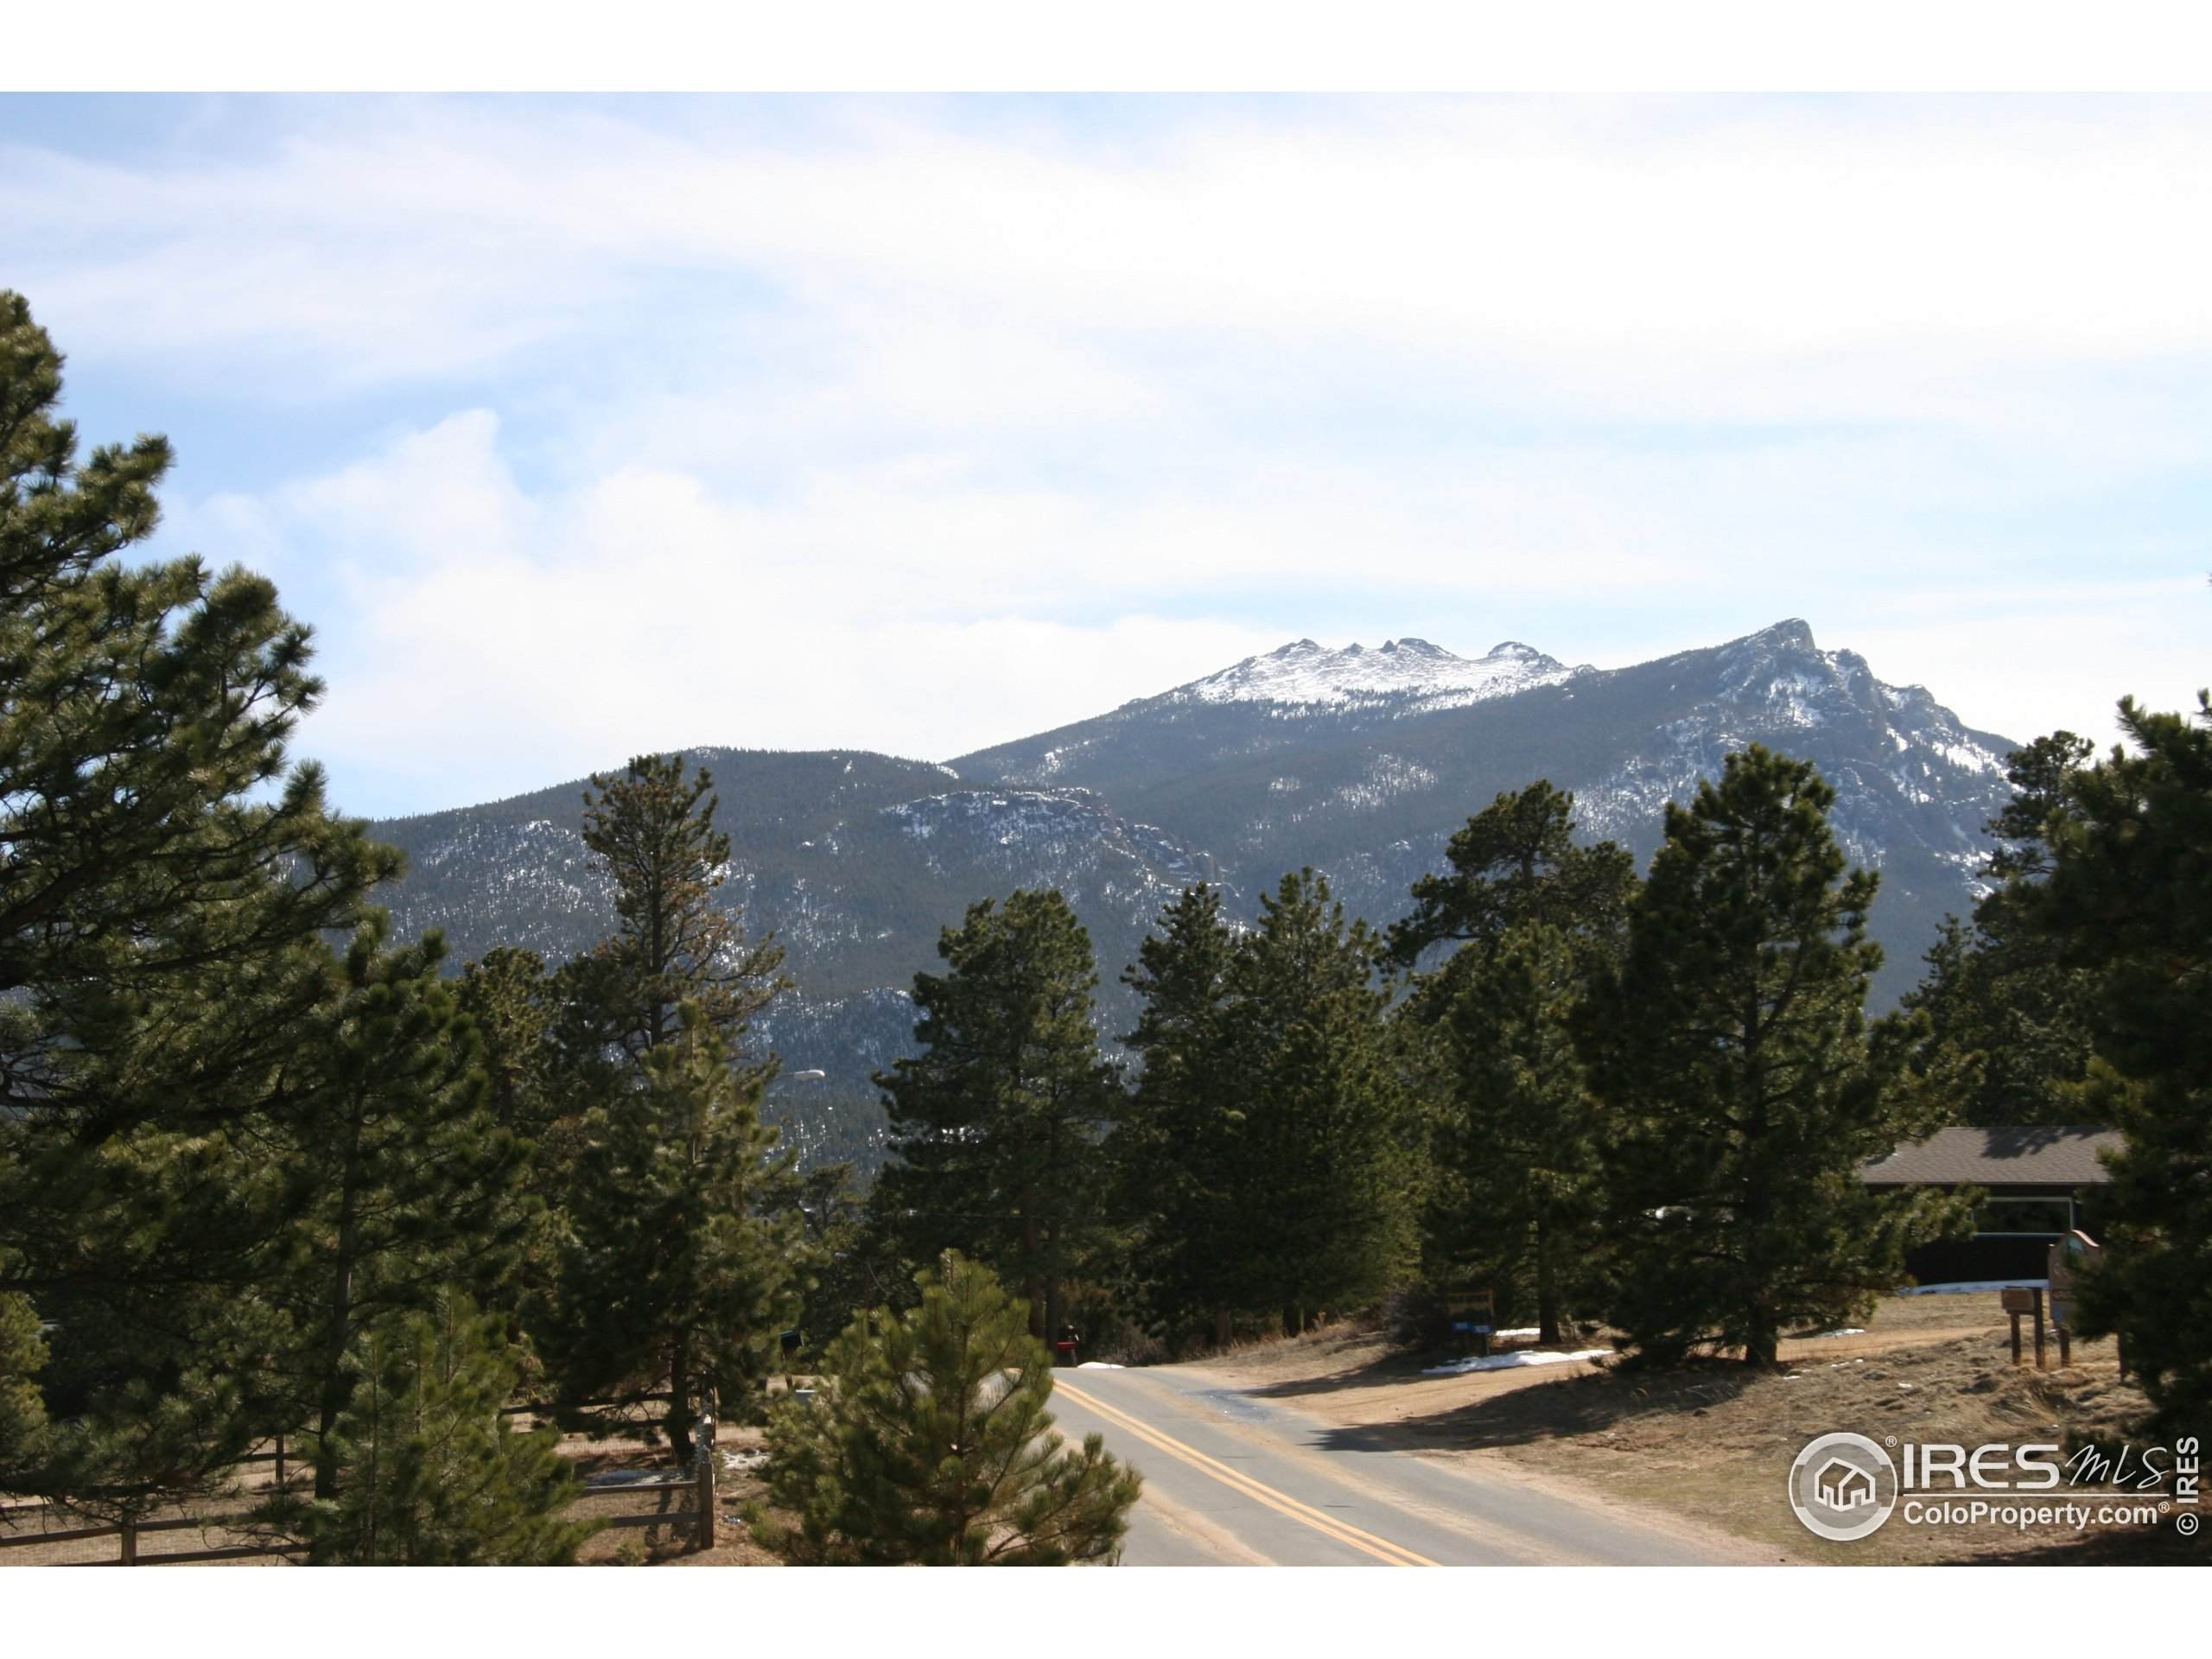 765 S 46th St, Boulder, CO 80305 (MLS #924214) :: The Sam Biller Home Team